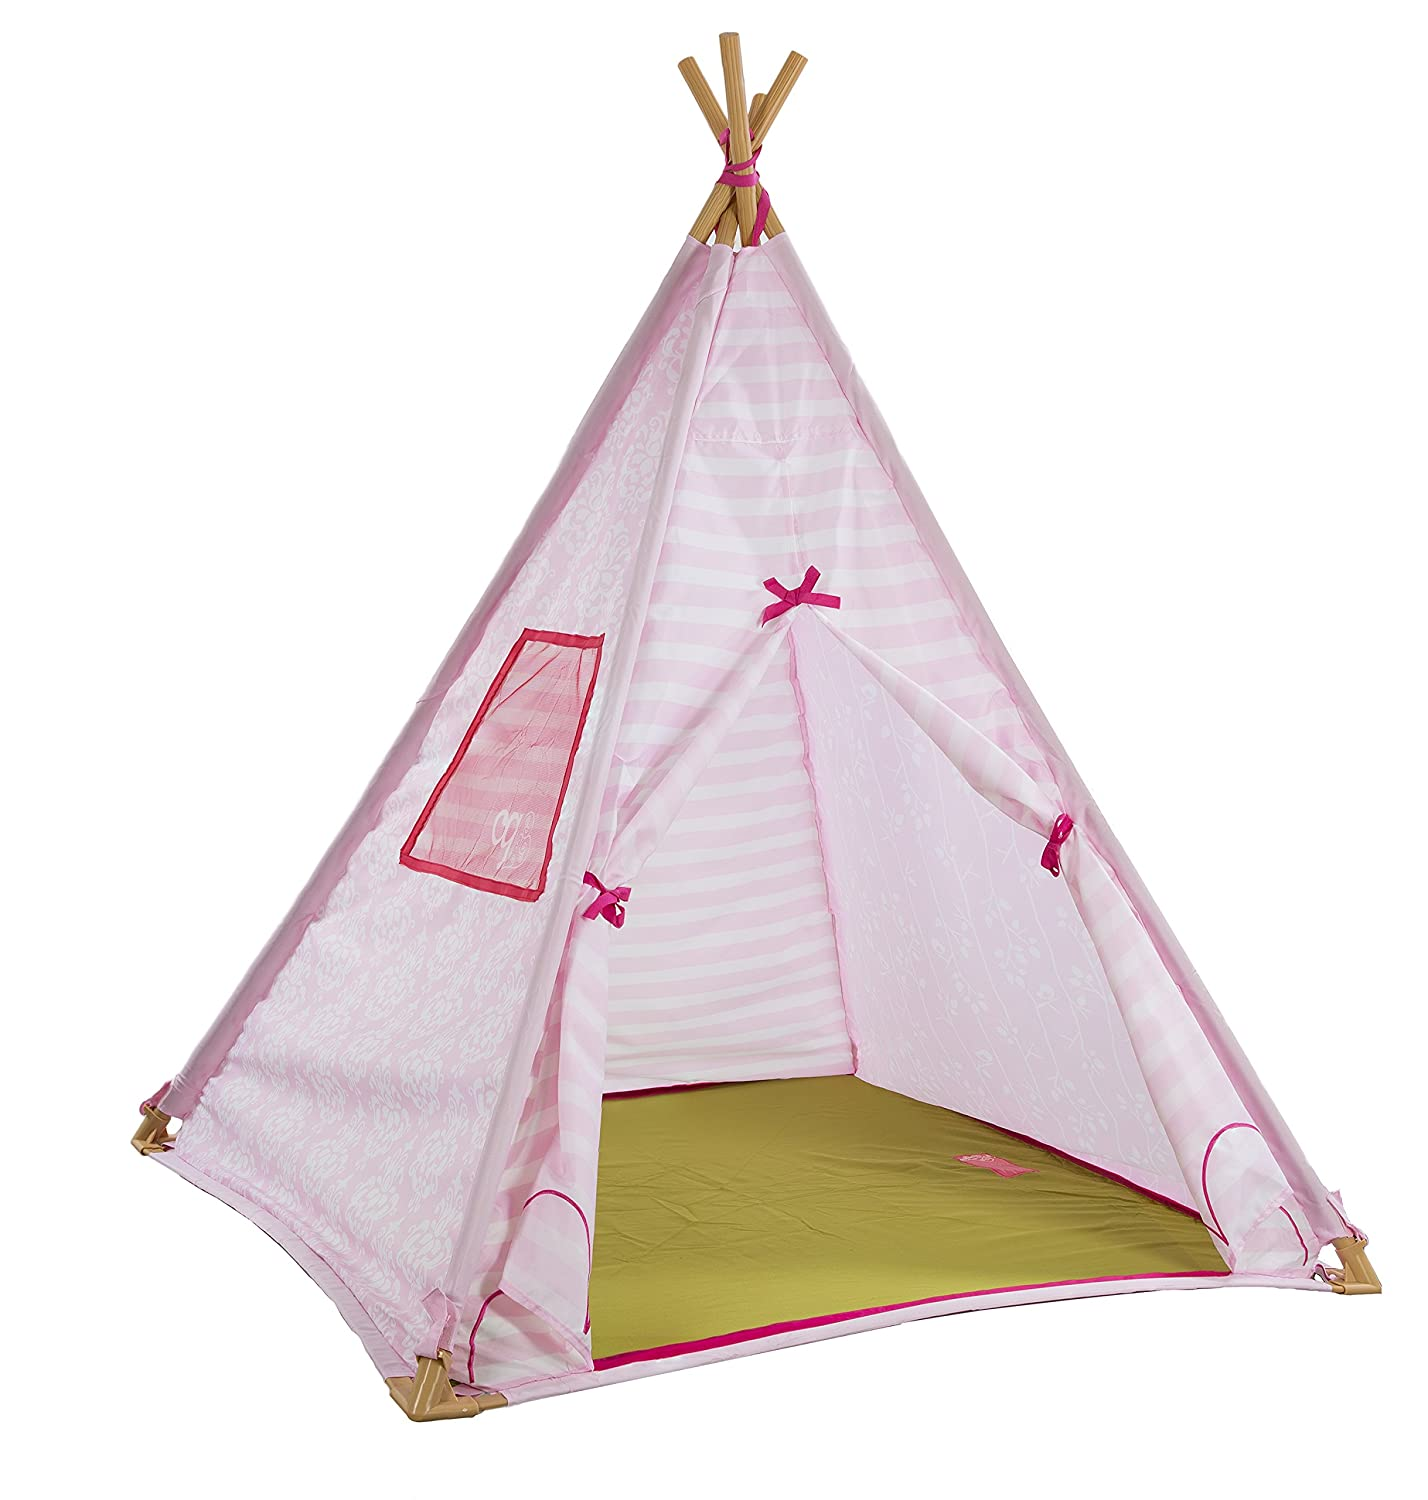 Amazon.com Our Generation Suite Teepee u2013 Pink Polyester u2013 Indoor u2013 Night-light Included u2013 For Children and 18 Inch Dolls Toys u0026 Games  sc 1 st  Amazon.com & Amazon.com: Our Generation Suite Teepee u2013 Pink Polyester u2013 Indoor ...